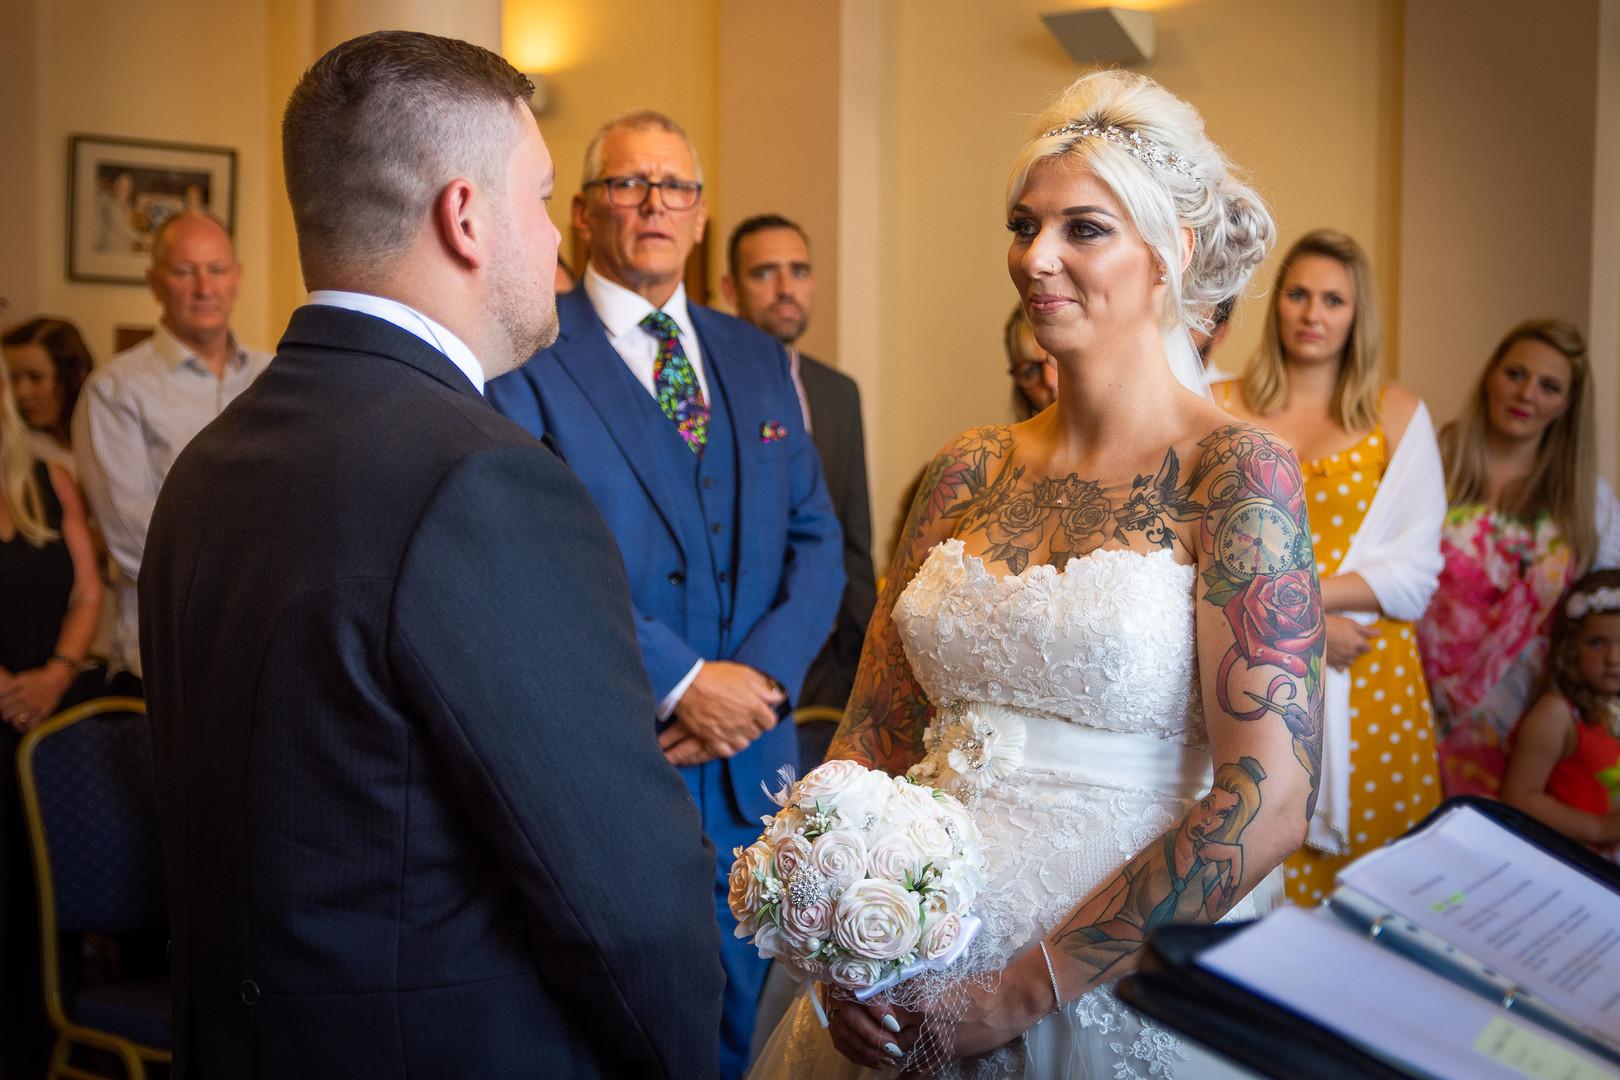 A couple are shown holding hands and looking at each other during their wedding ceremony at Hull Guildhall.